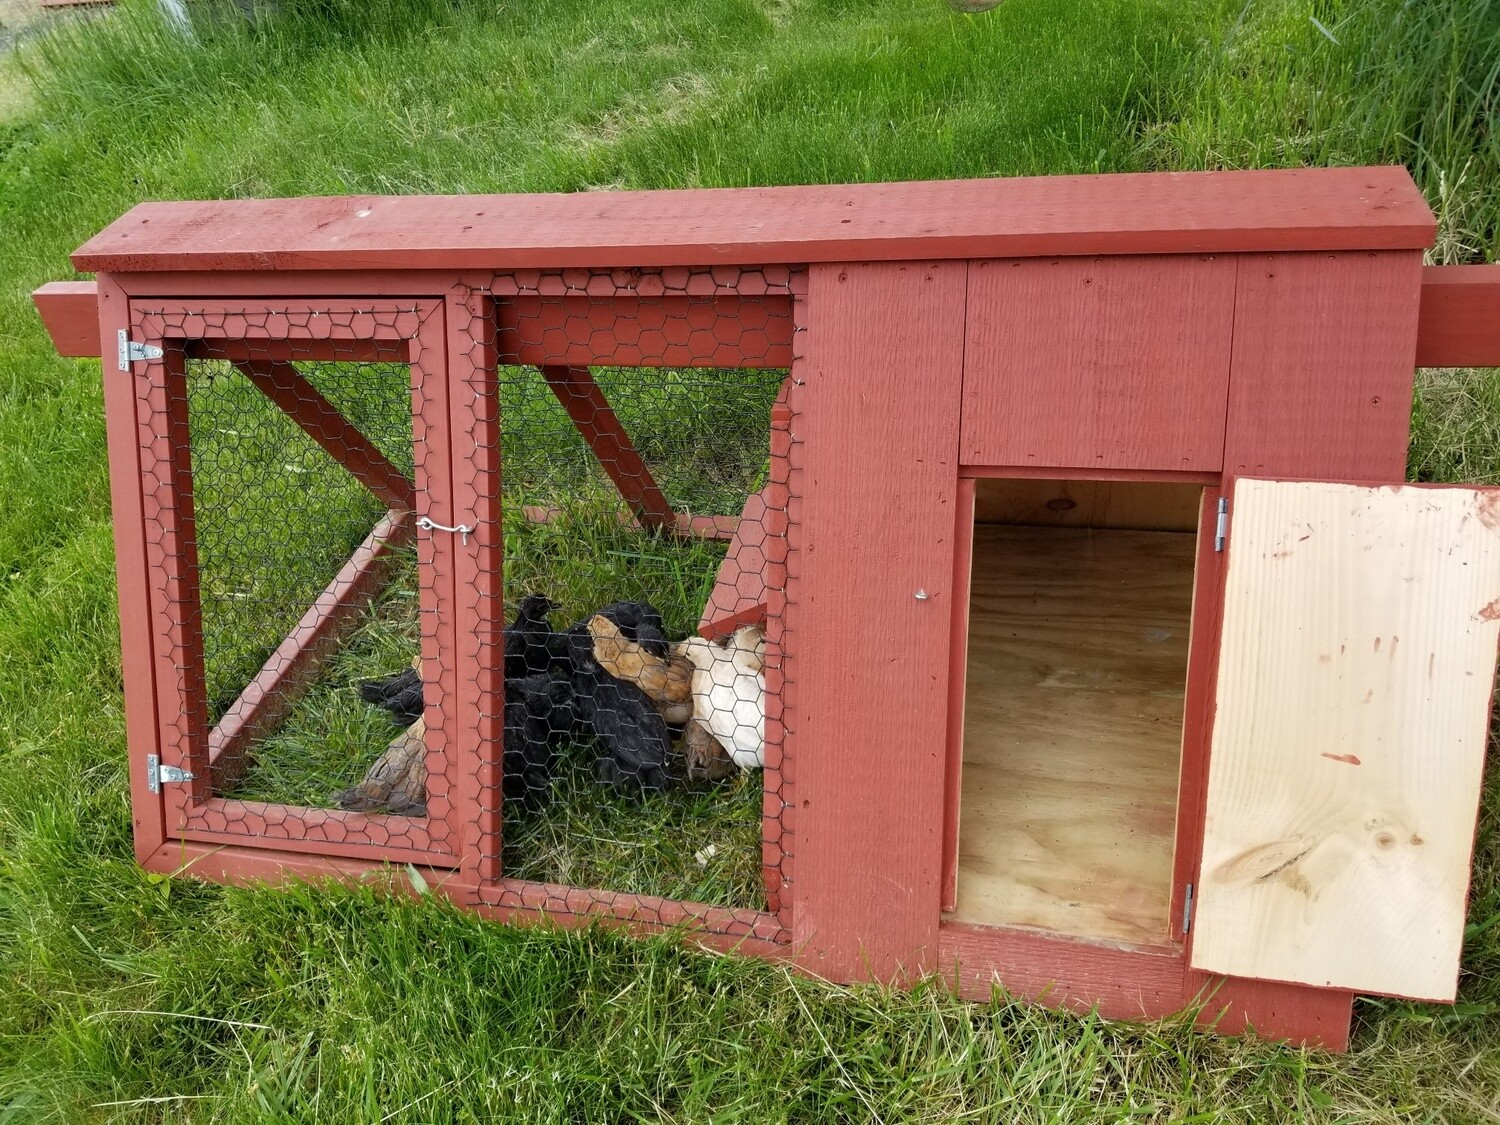 Bunny Hutch.  Single house. Red